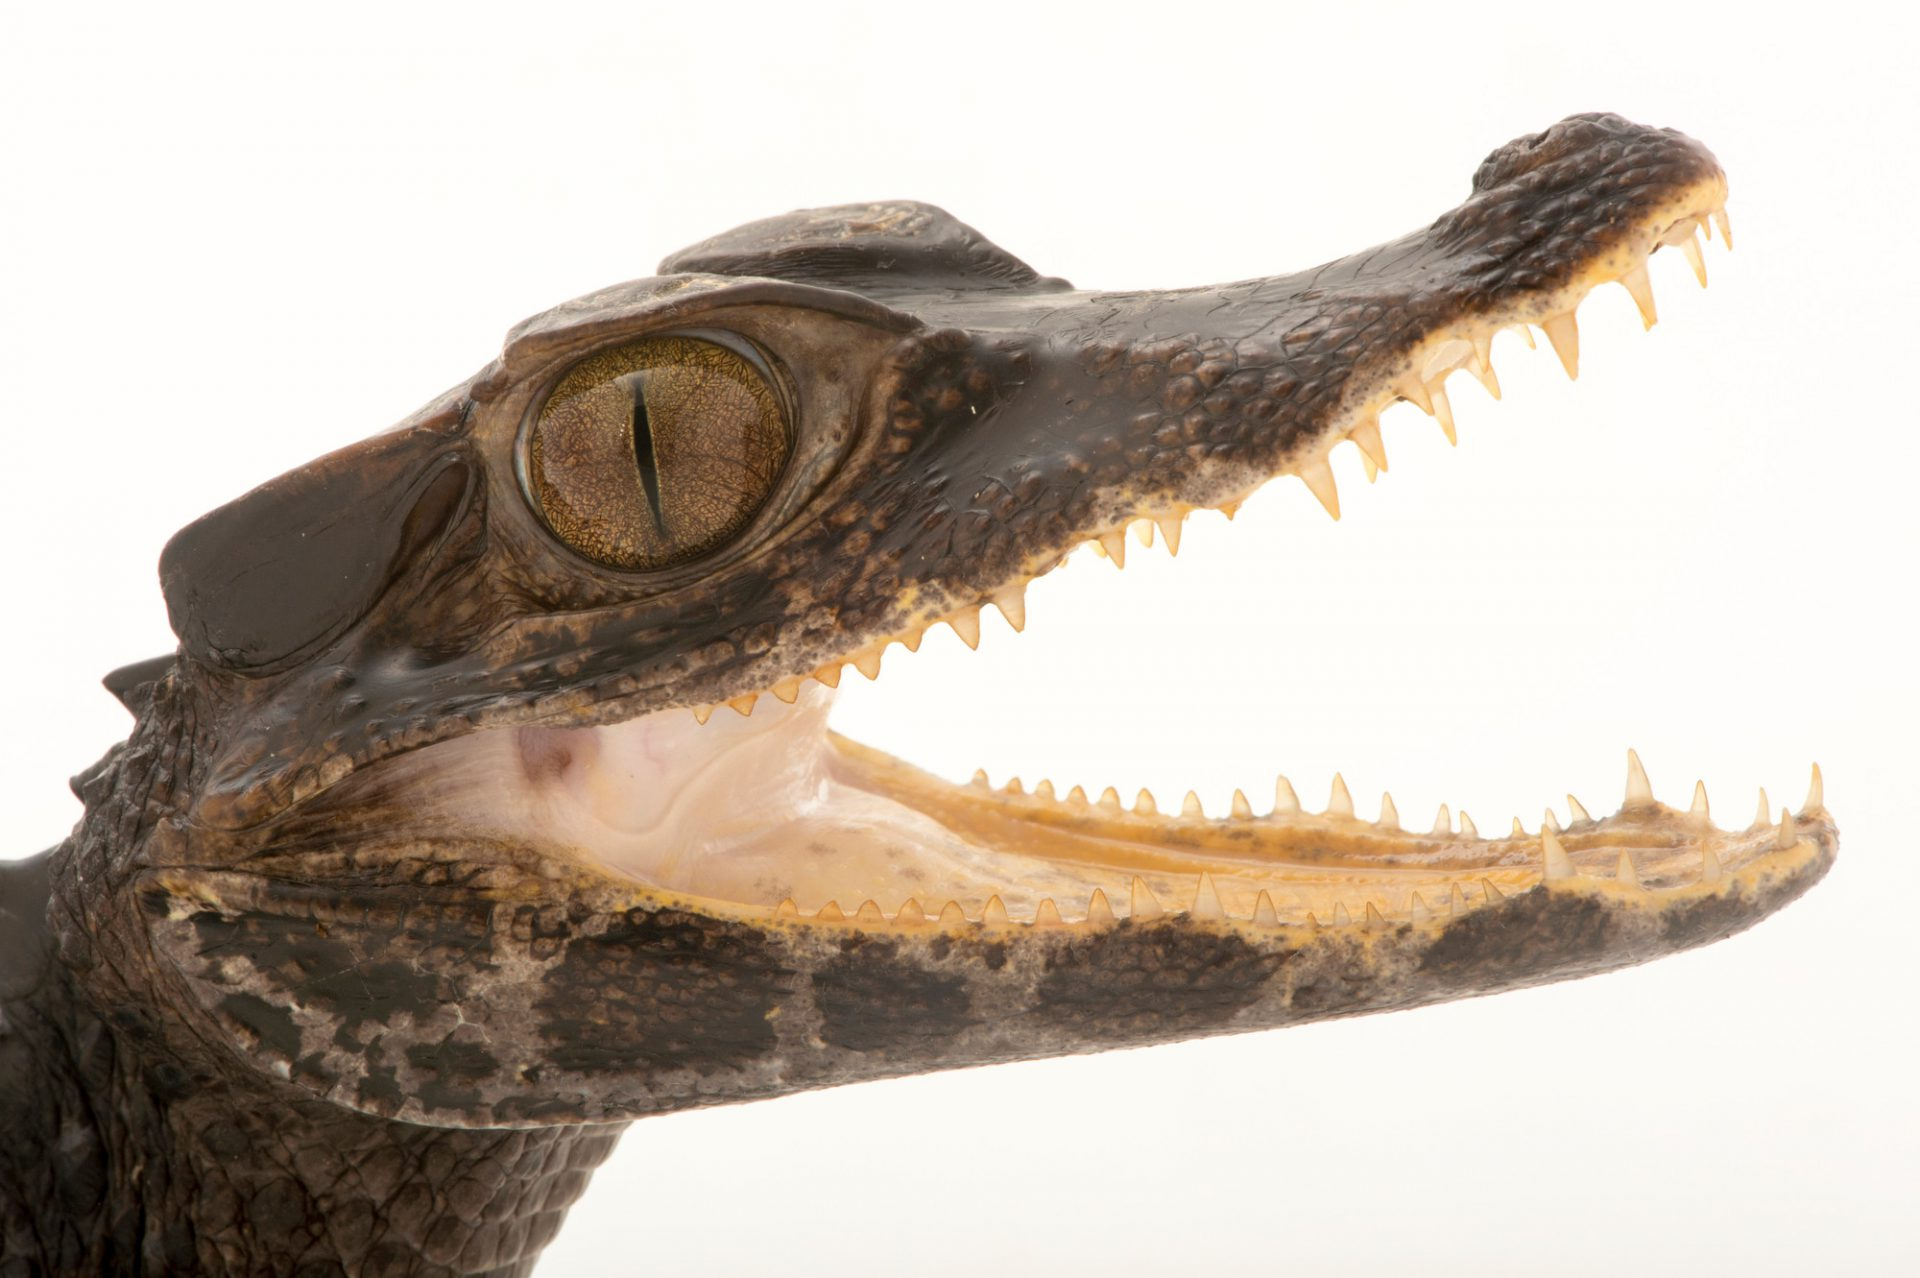 Photo: Smooth-fronted caiman (Paleosuchus trigonatus) from a private collection.